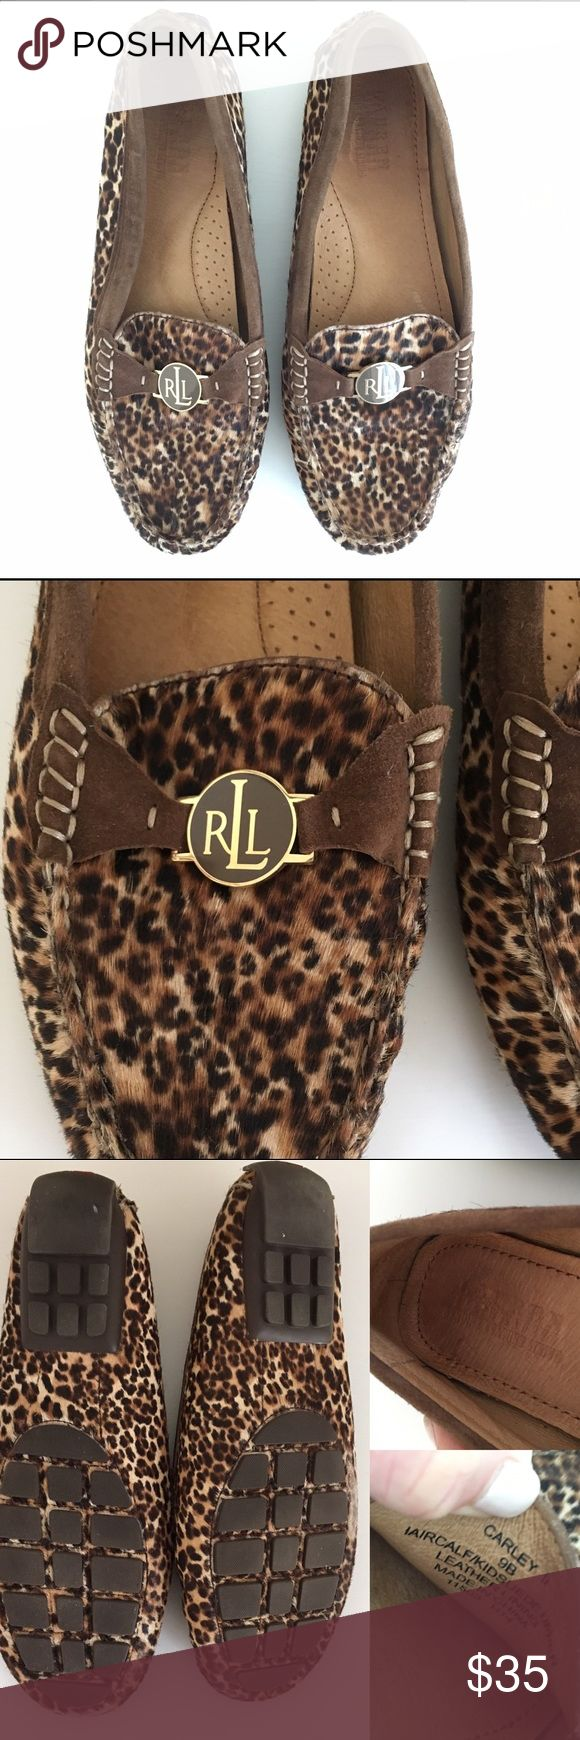 Ralph Lauren Carly II Cheetah Penny Loafer These are SO comfy! Padded leather footbed makes them literally feel like slippers- but so much more chic! Made of real leather and calf hair, with a rubber sole for better traction. Slip on design for easy on and off. Logo medallion at the front and a logo on back. The logo medallion on one shoe is a bit loose, but a little glue will fix that. Size 9. Seriously these are gorgeous, classic shoes that you will wear again and again. Google for more…